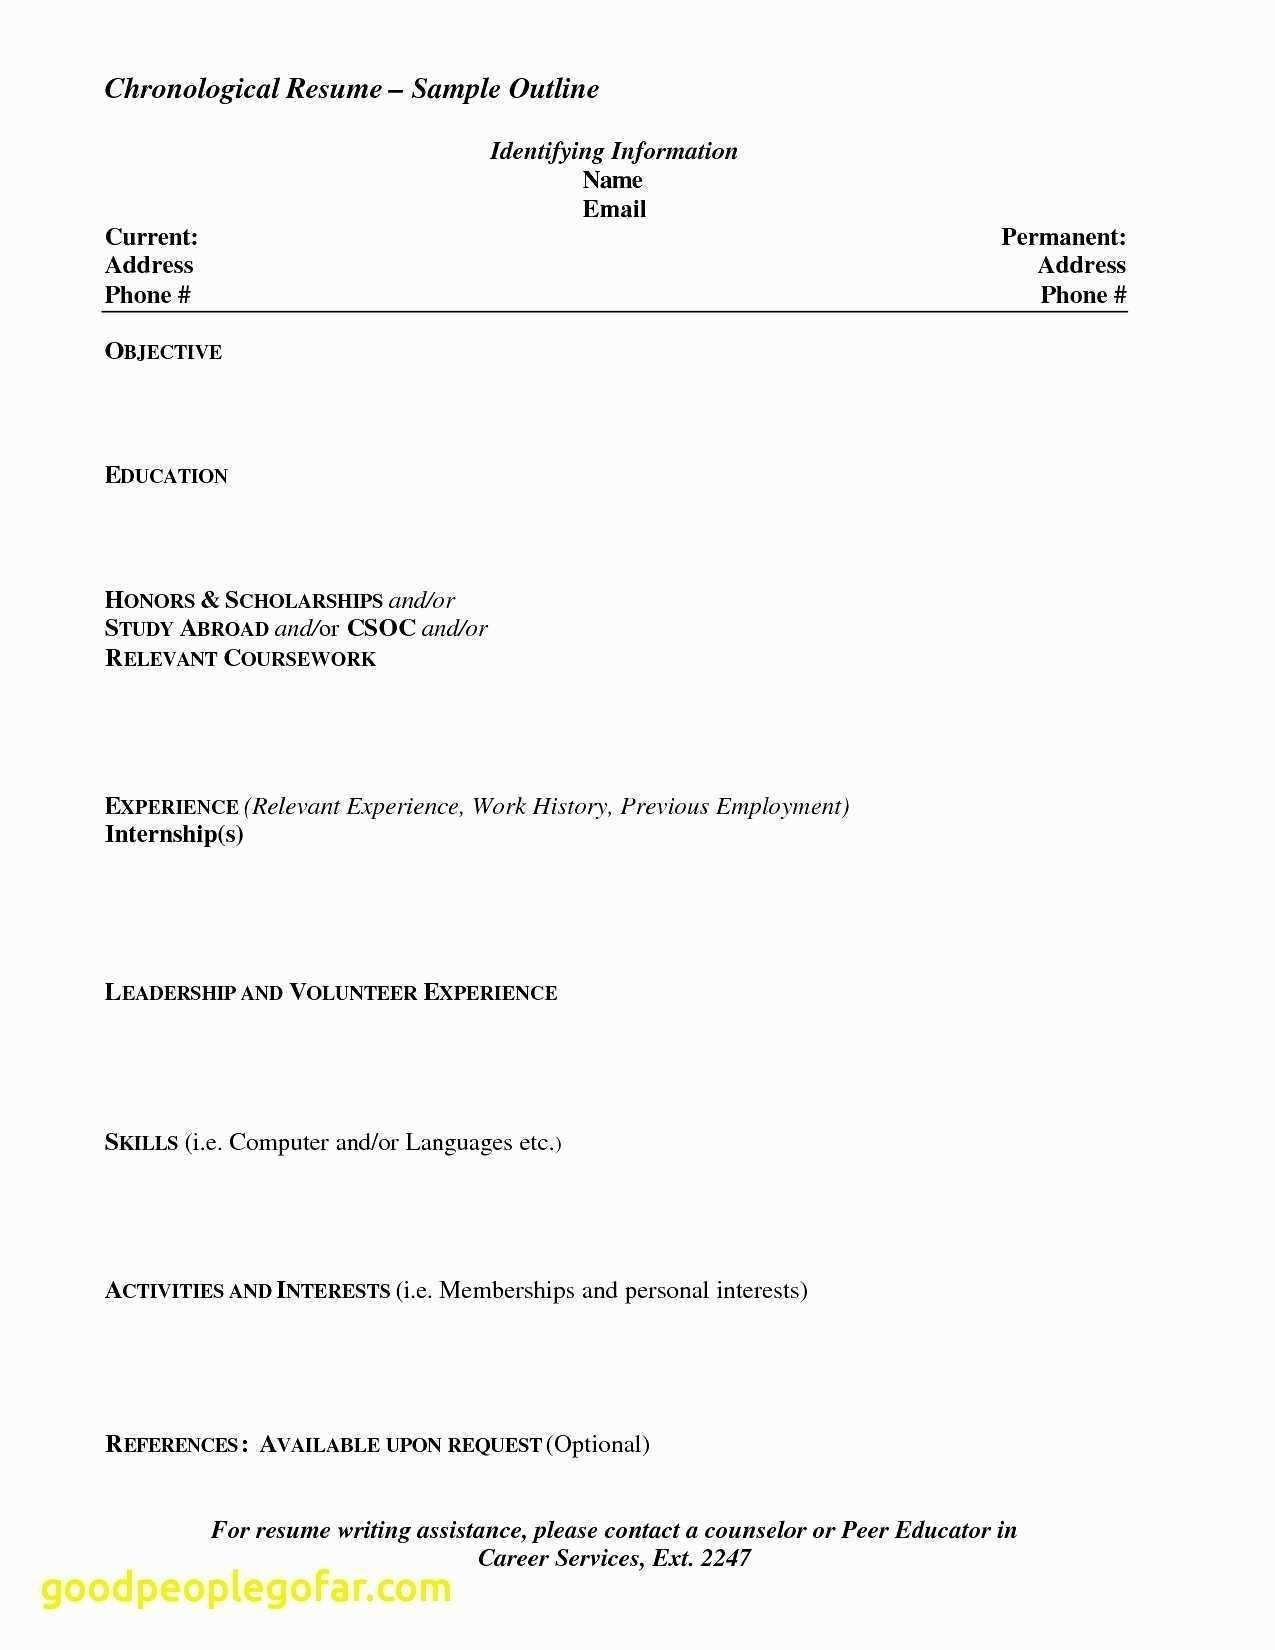 Free Blank Resume Templates Download Blank Chronological Resume Templates With Free Blank Resume Template